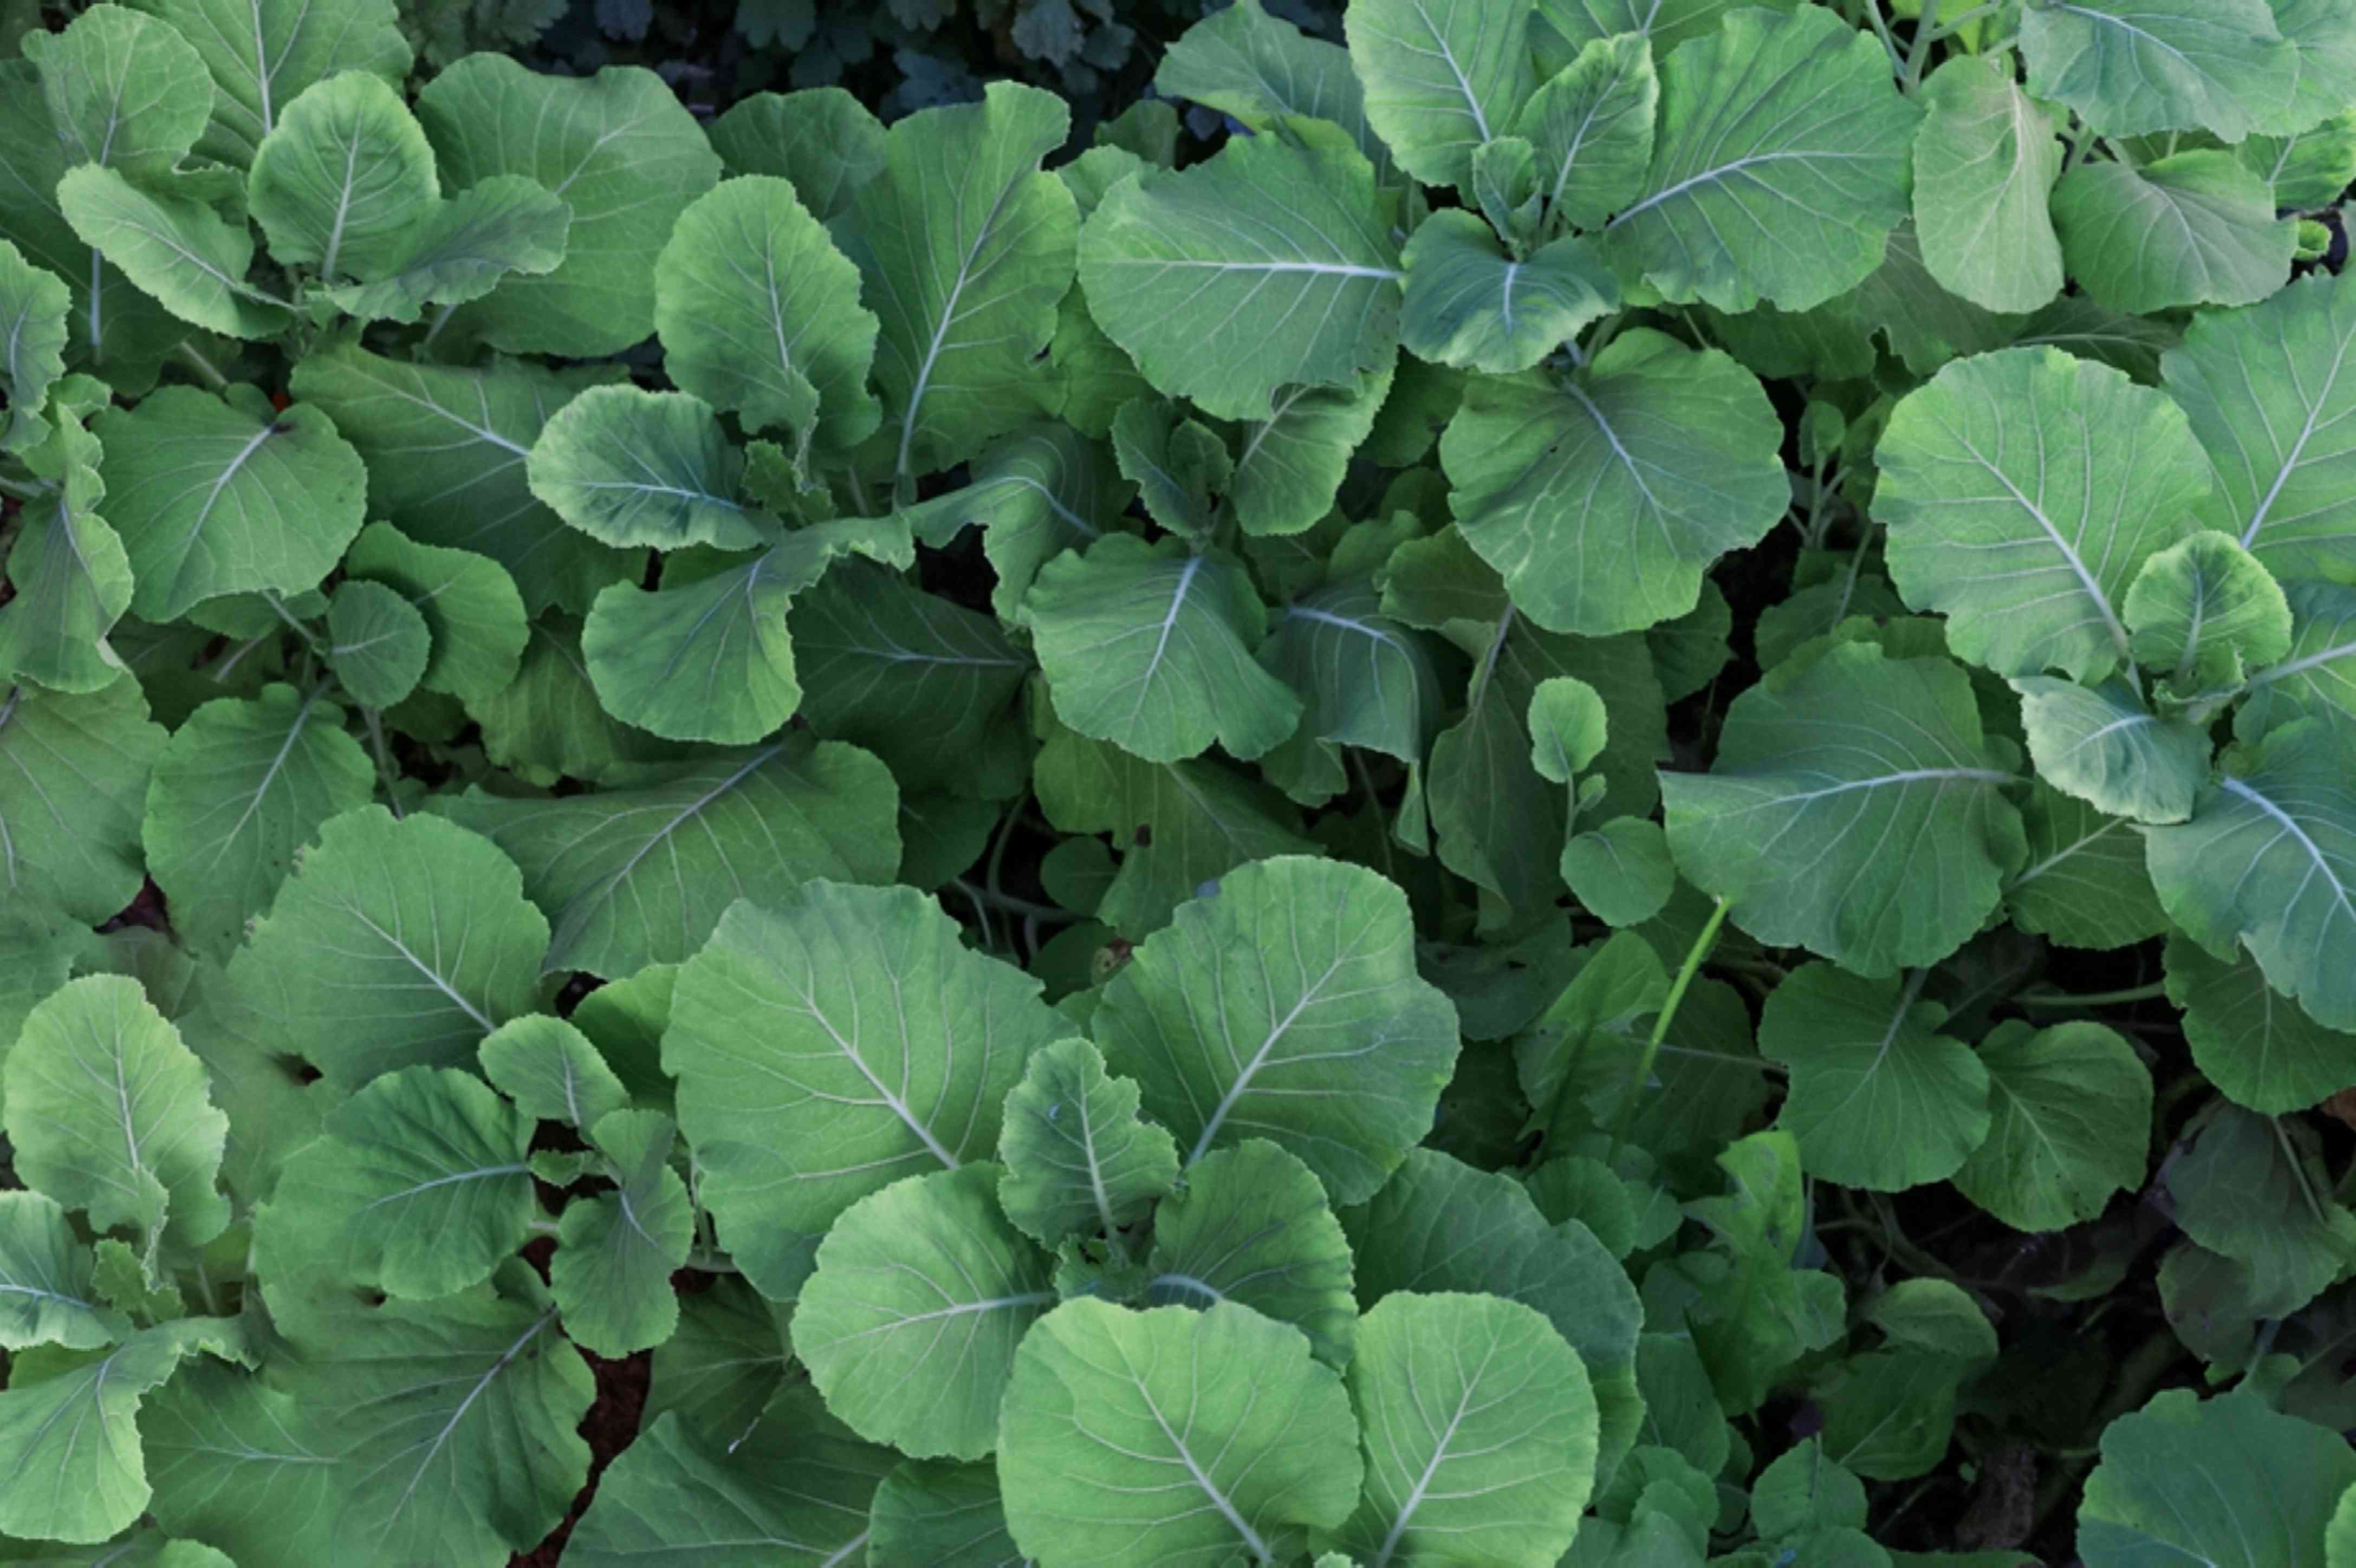 Organic kale plants with large leaves clustered together